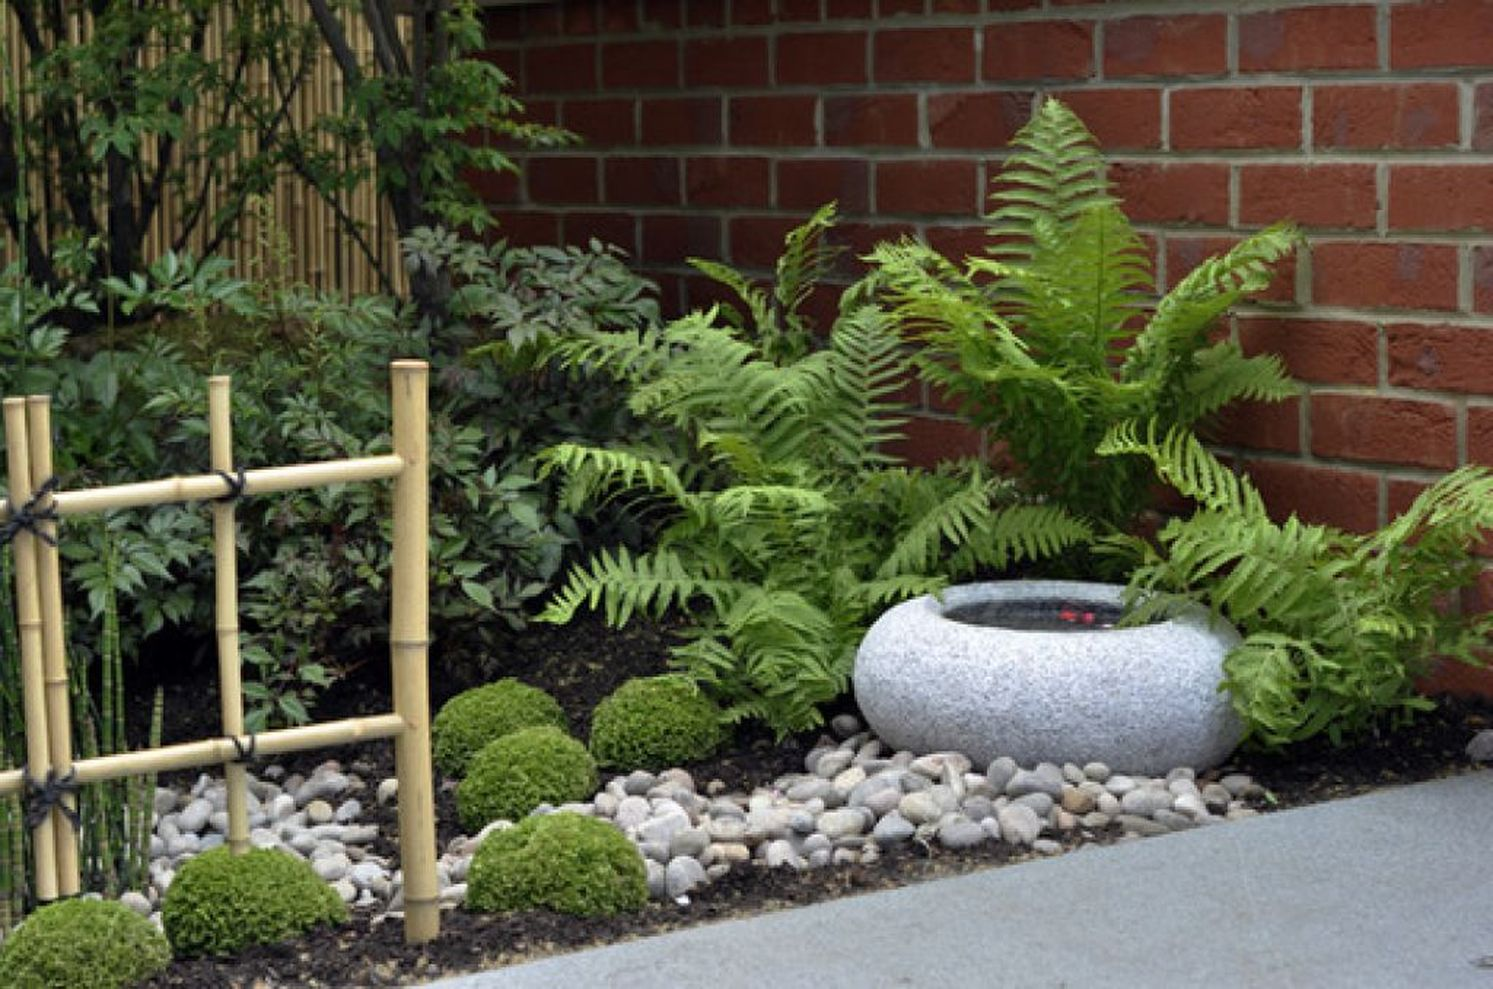 Inspiring small japanese garden design ideas 40 - ROUNDECOR